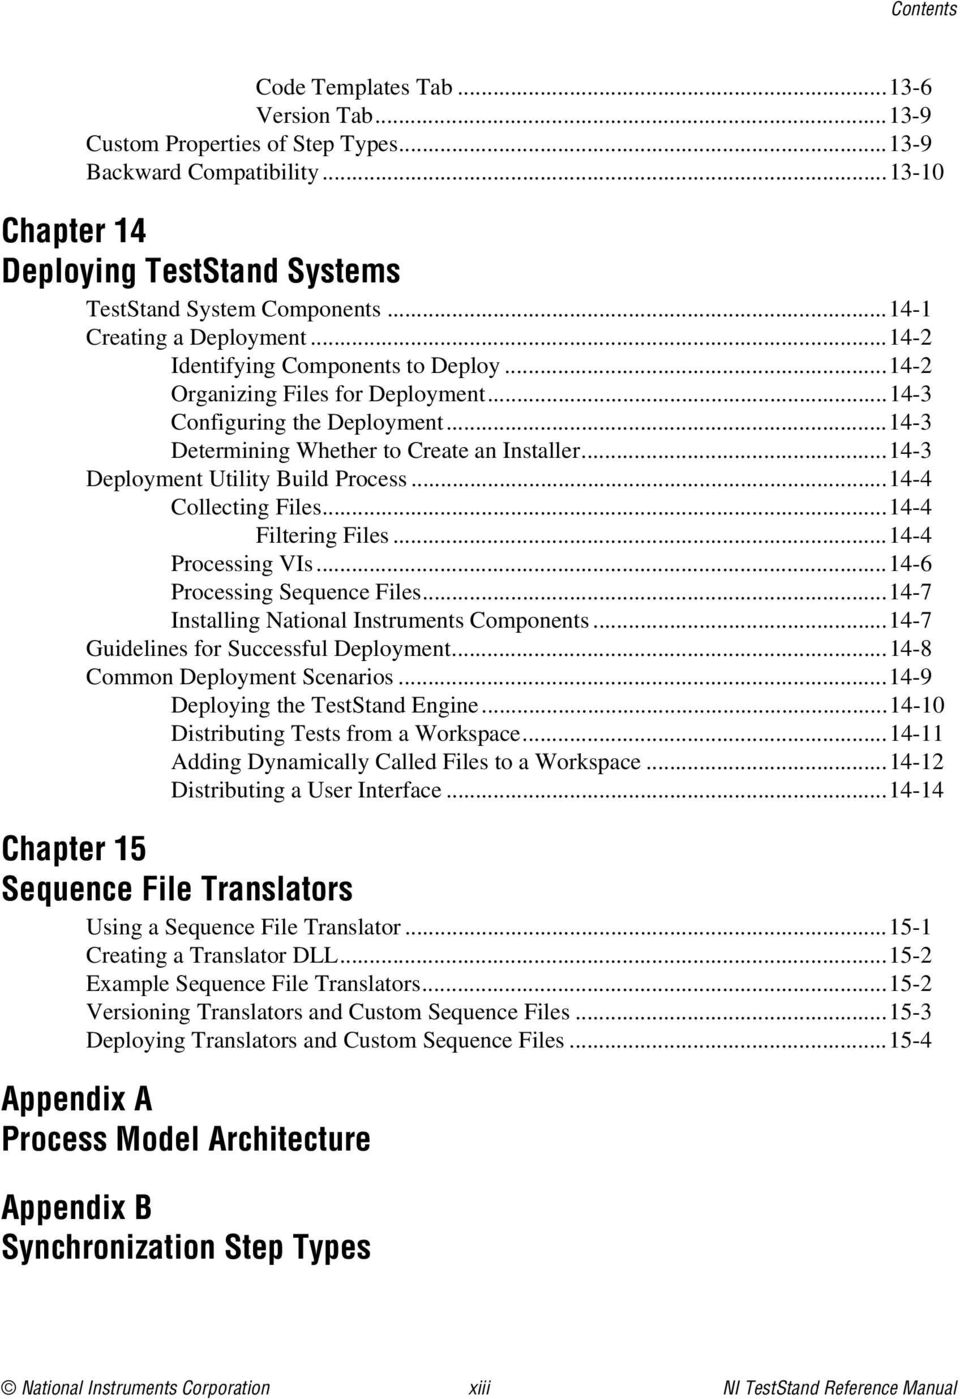 ni teststandtm reference manual ni teststand reference manual rh docplayer net